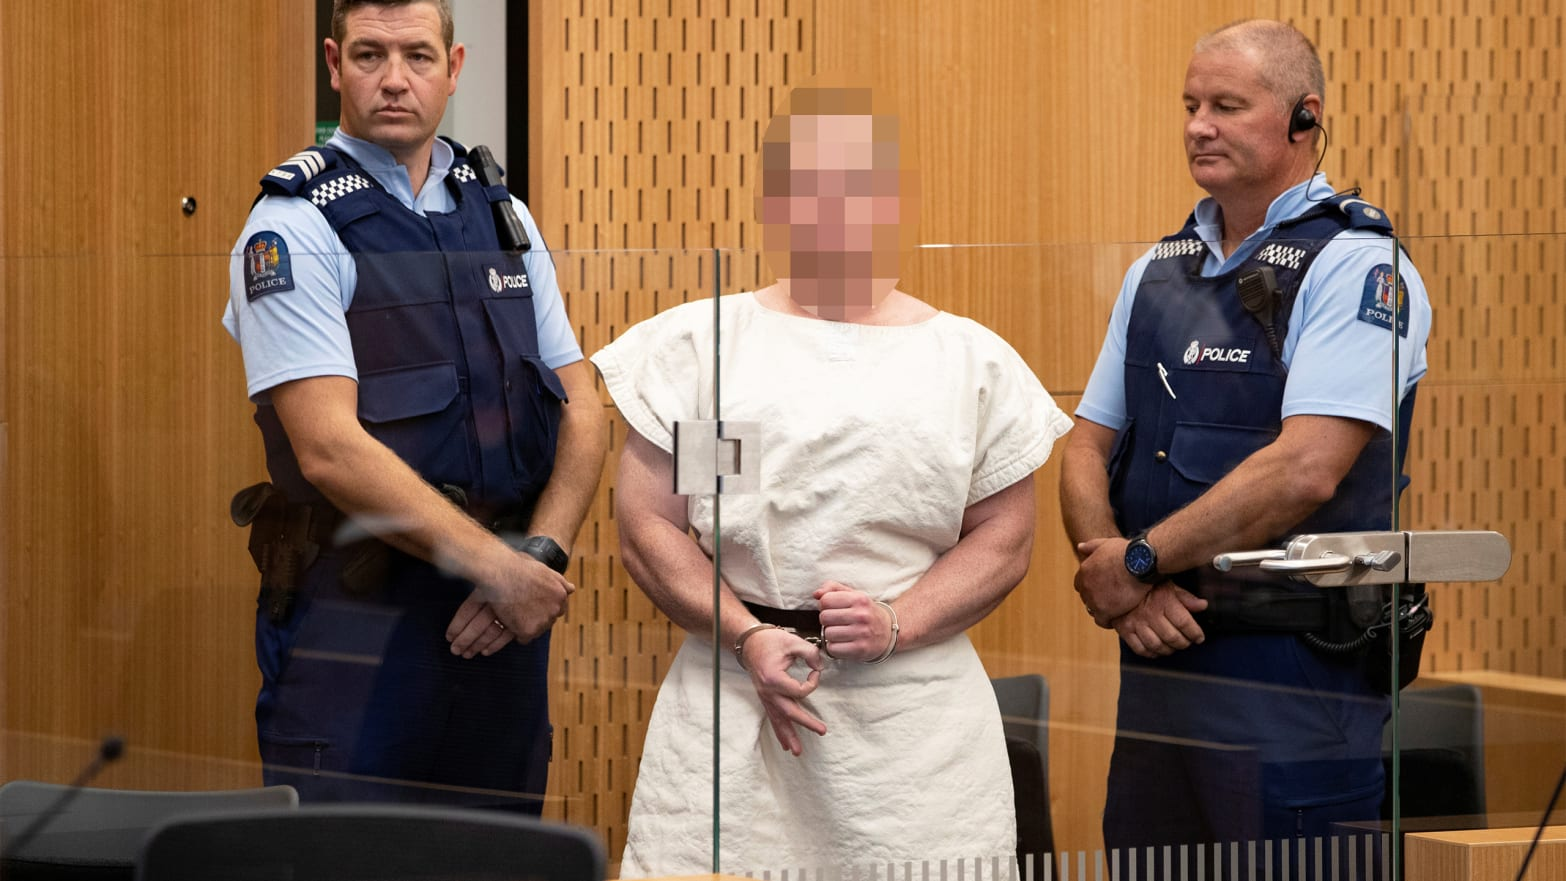 New Zealand Shootings Picture: New Zealand Mosque Shooting Suspect Brenton Tarrant